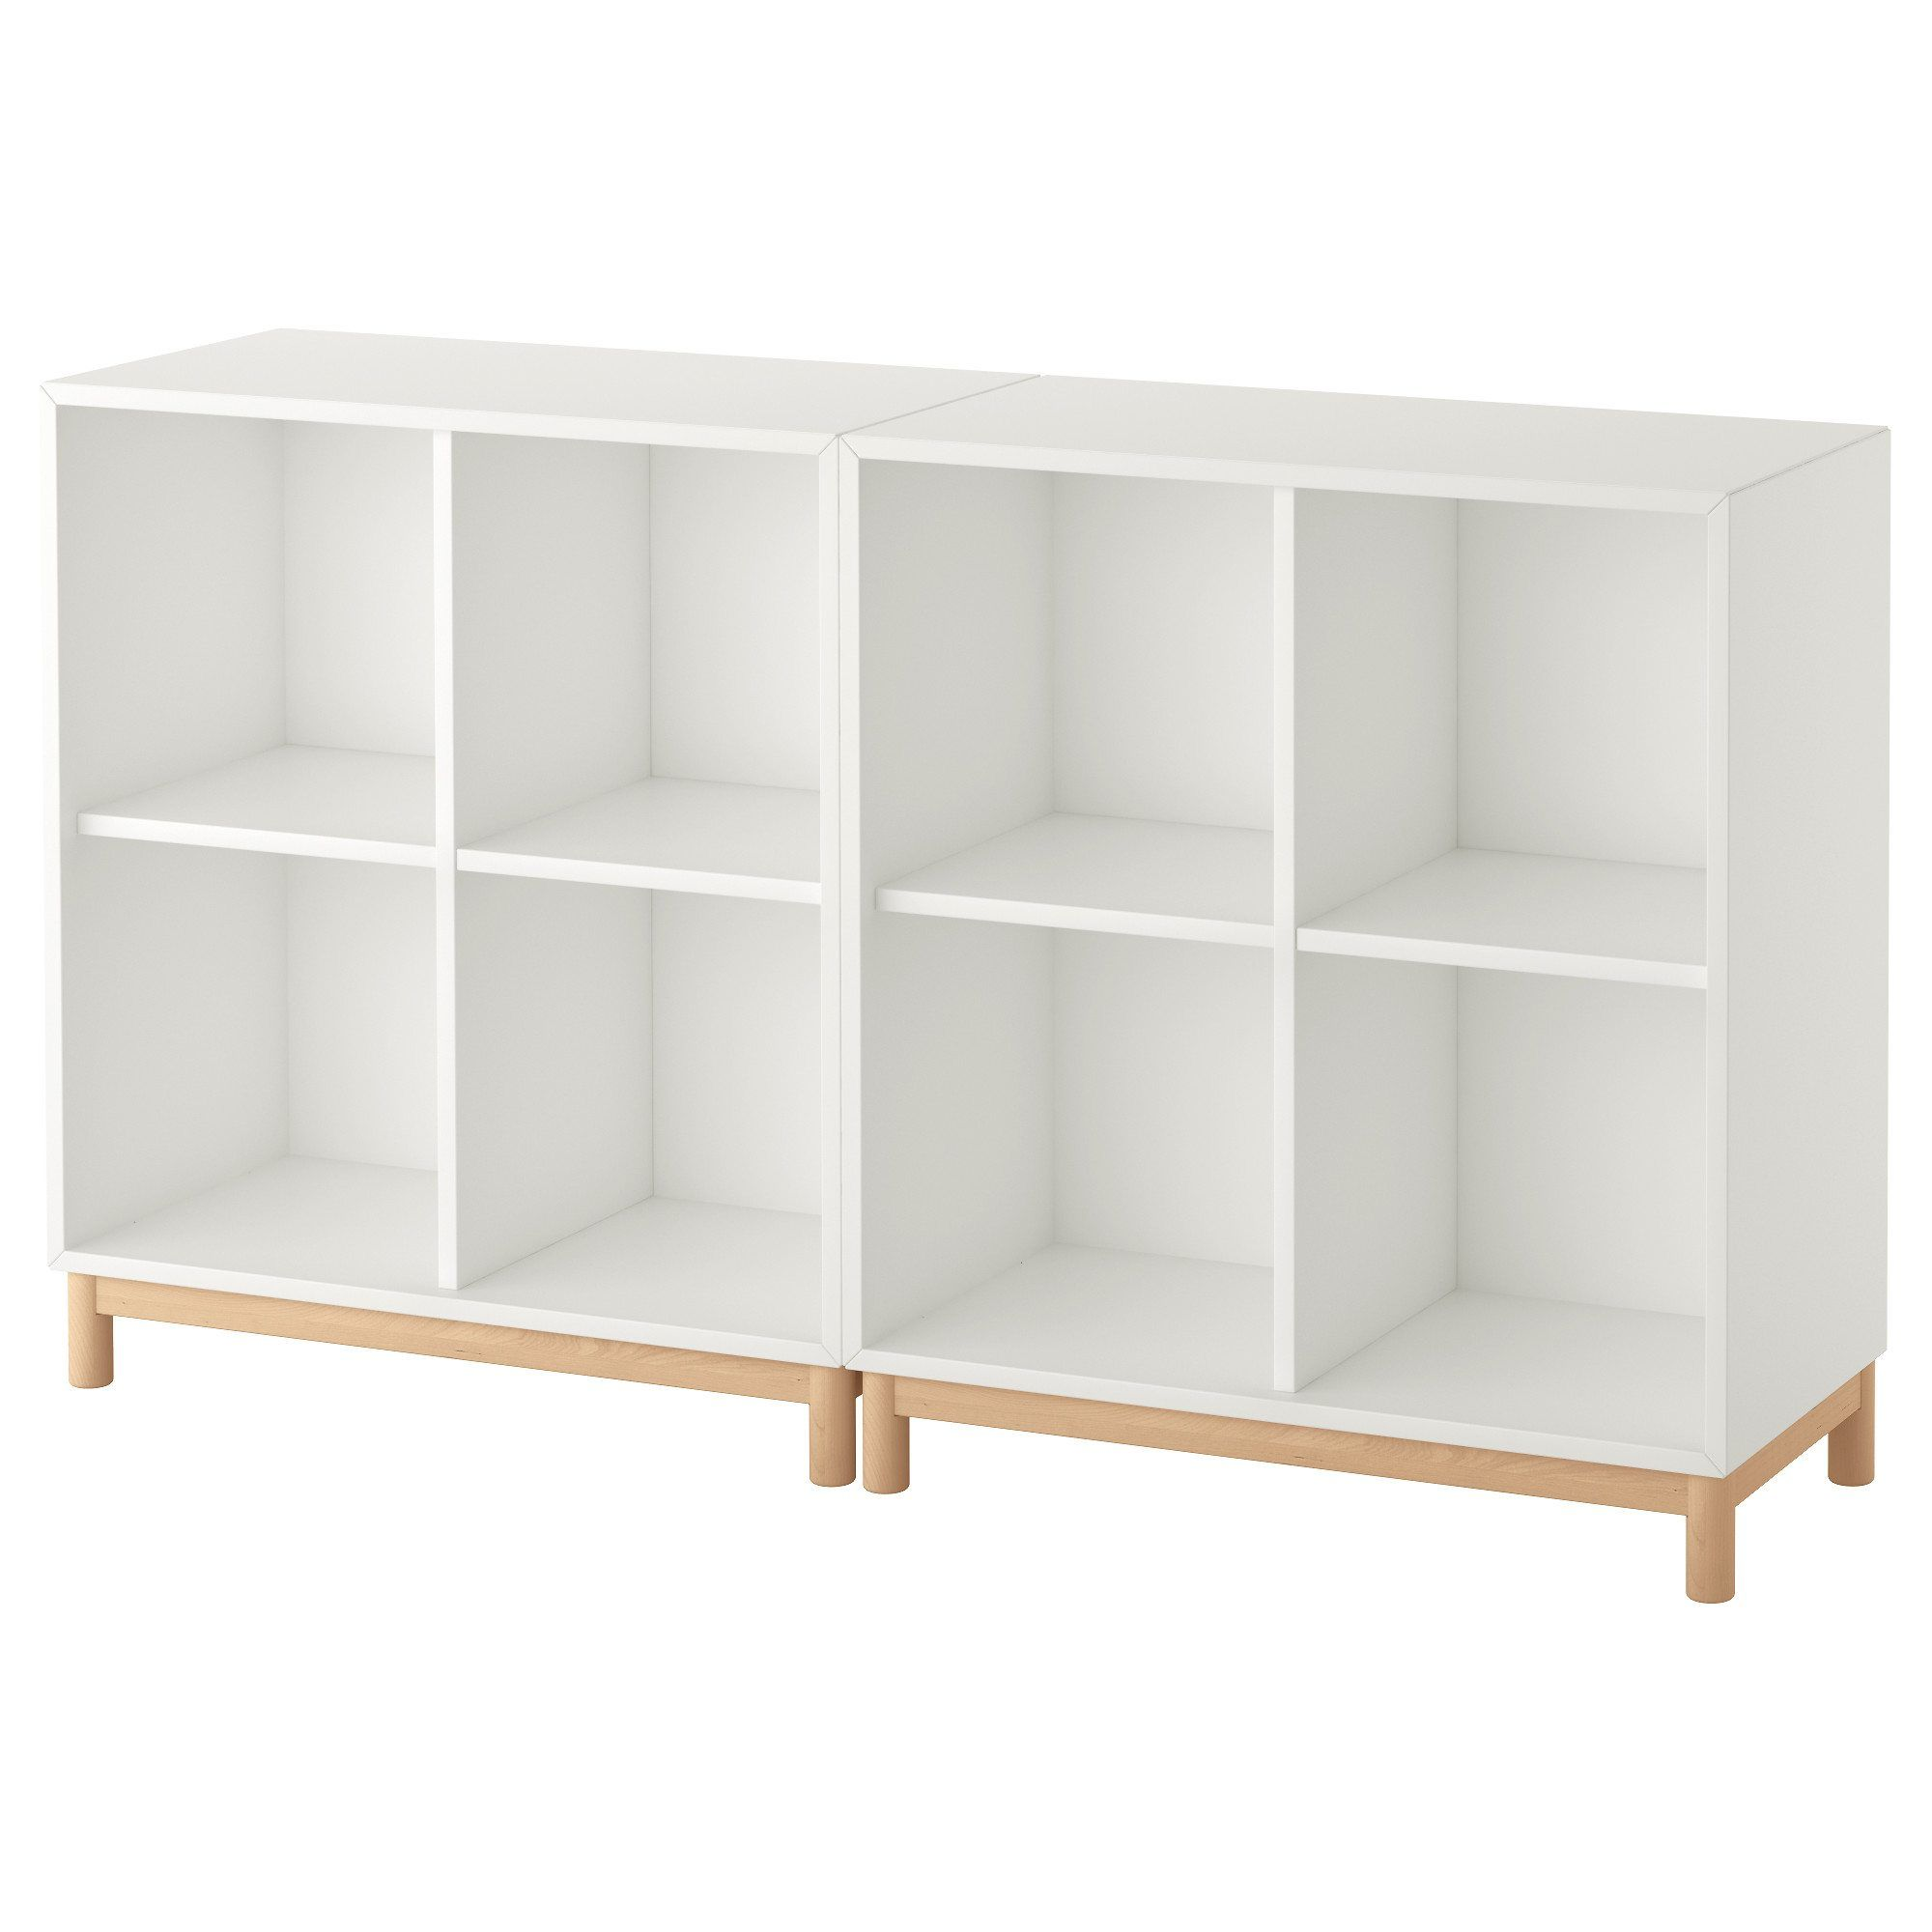 great products storage shelf trading in co and wooden white abbeville toy cubes unit a with little